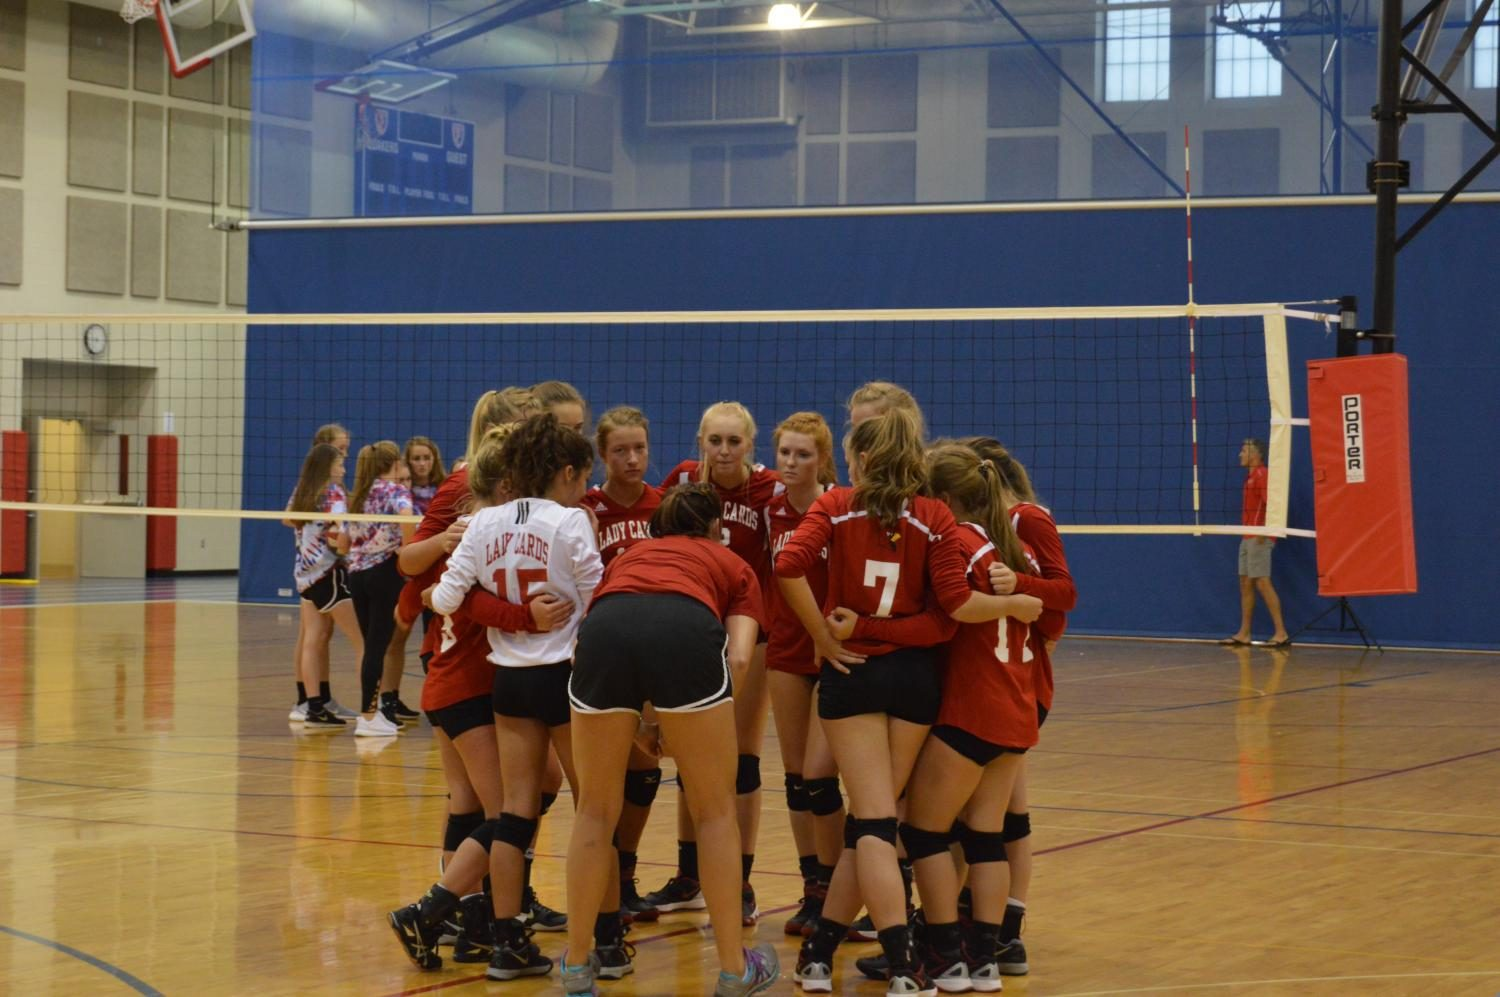 The volleyball team huddles together during a scrimmage against Plainfield High School.